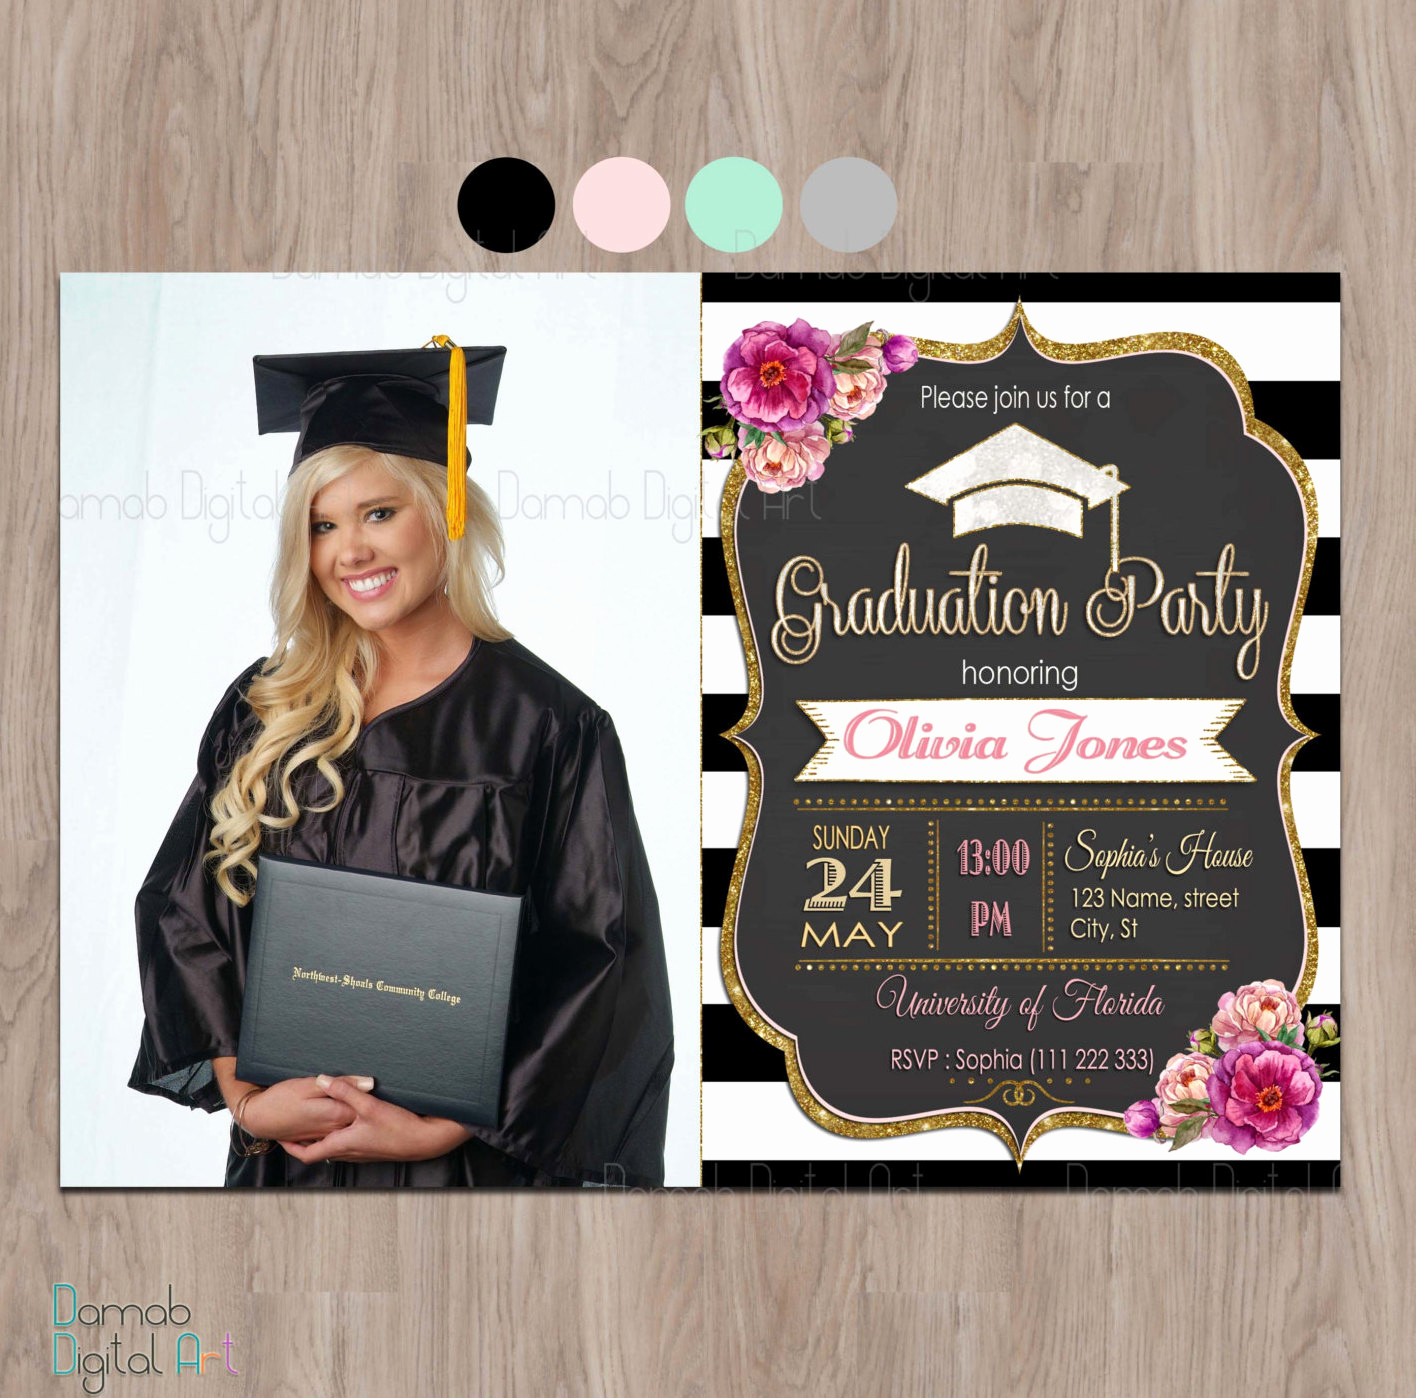 Graduation Announcement and Party Invitation Fresh Graduation Invitation Graduation Party Invitation